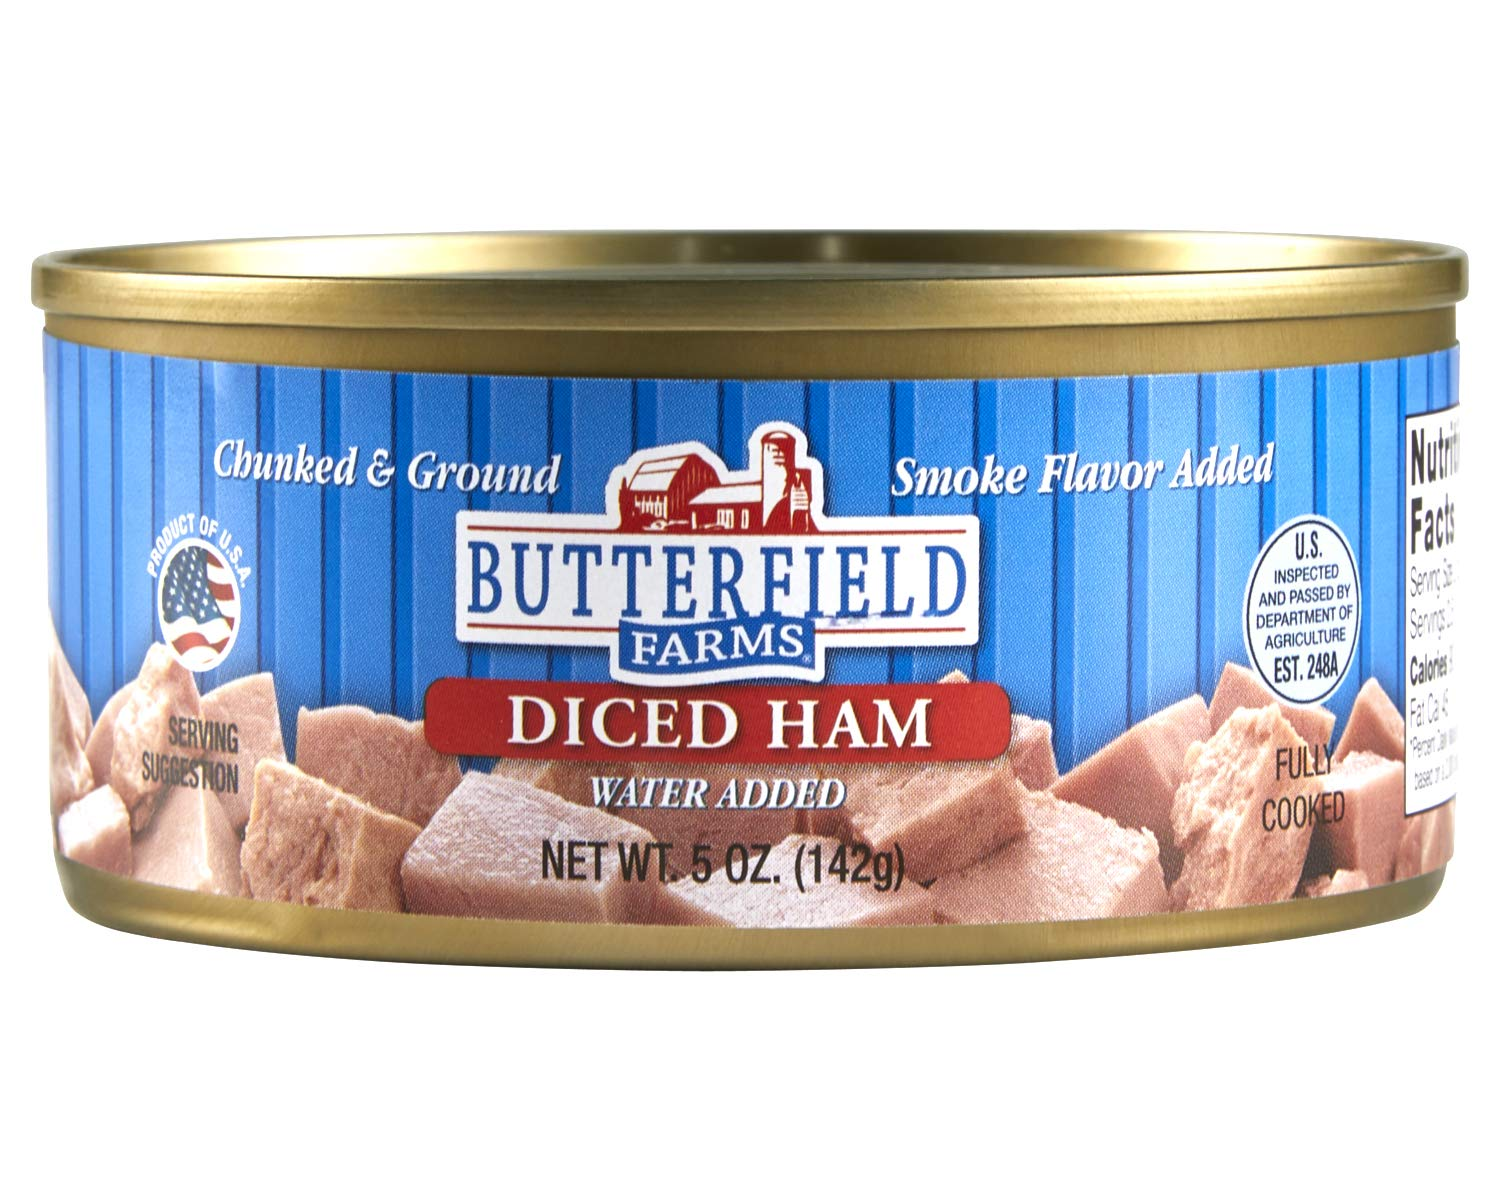 Butterfield Farms Diced Ham, 5 oz. Cans (Pack of 12)